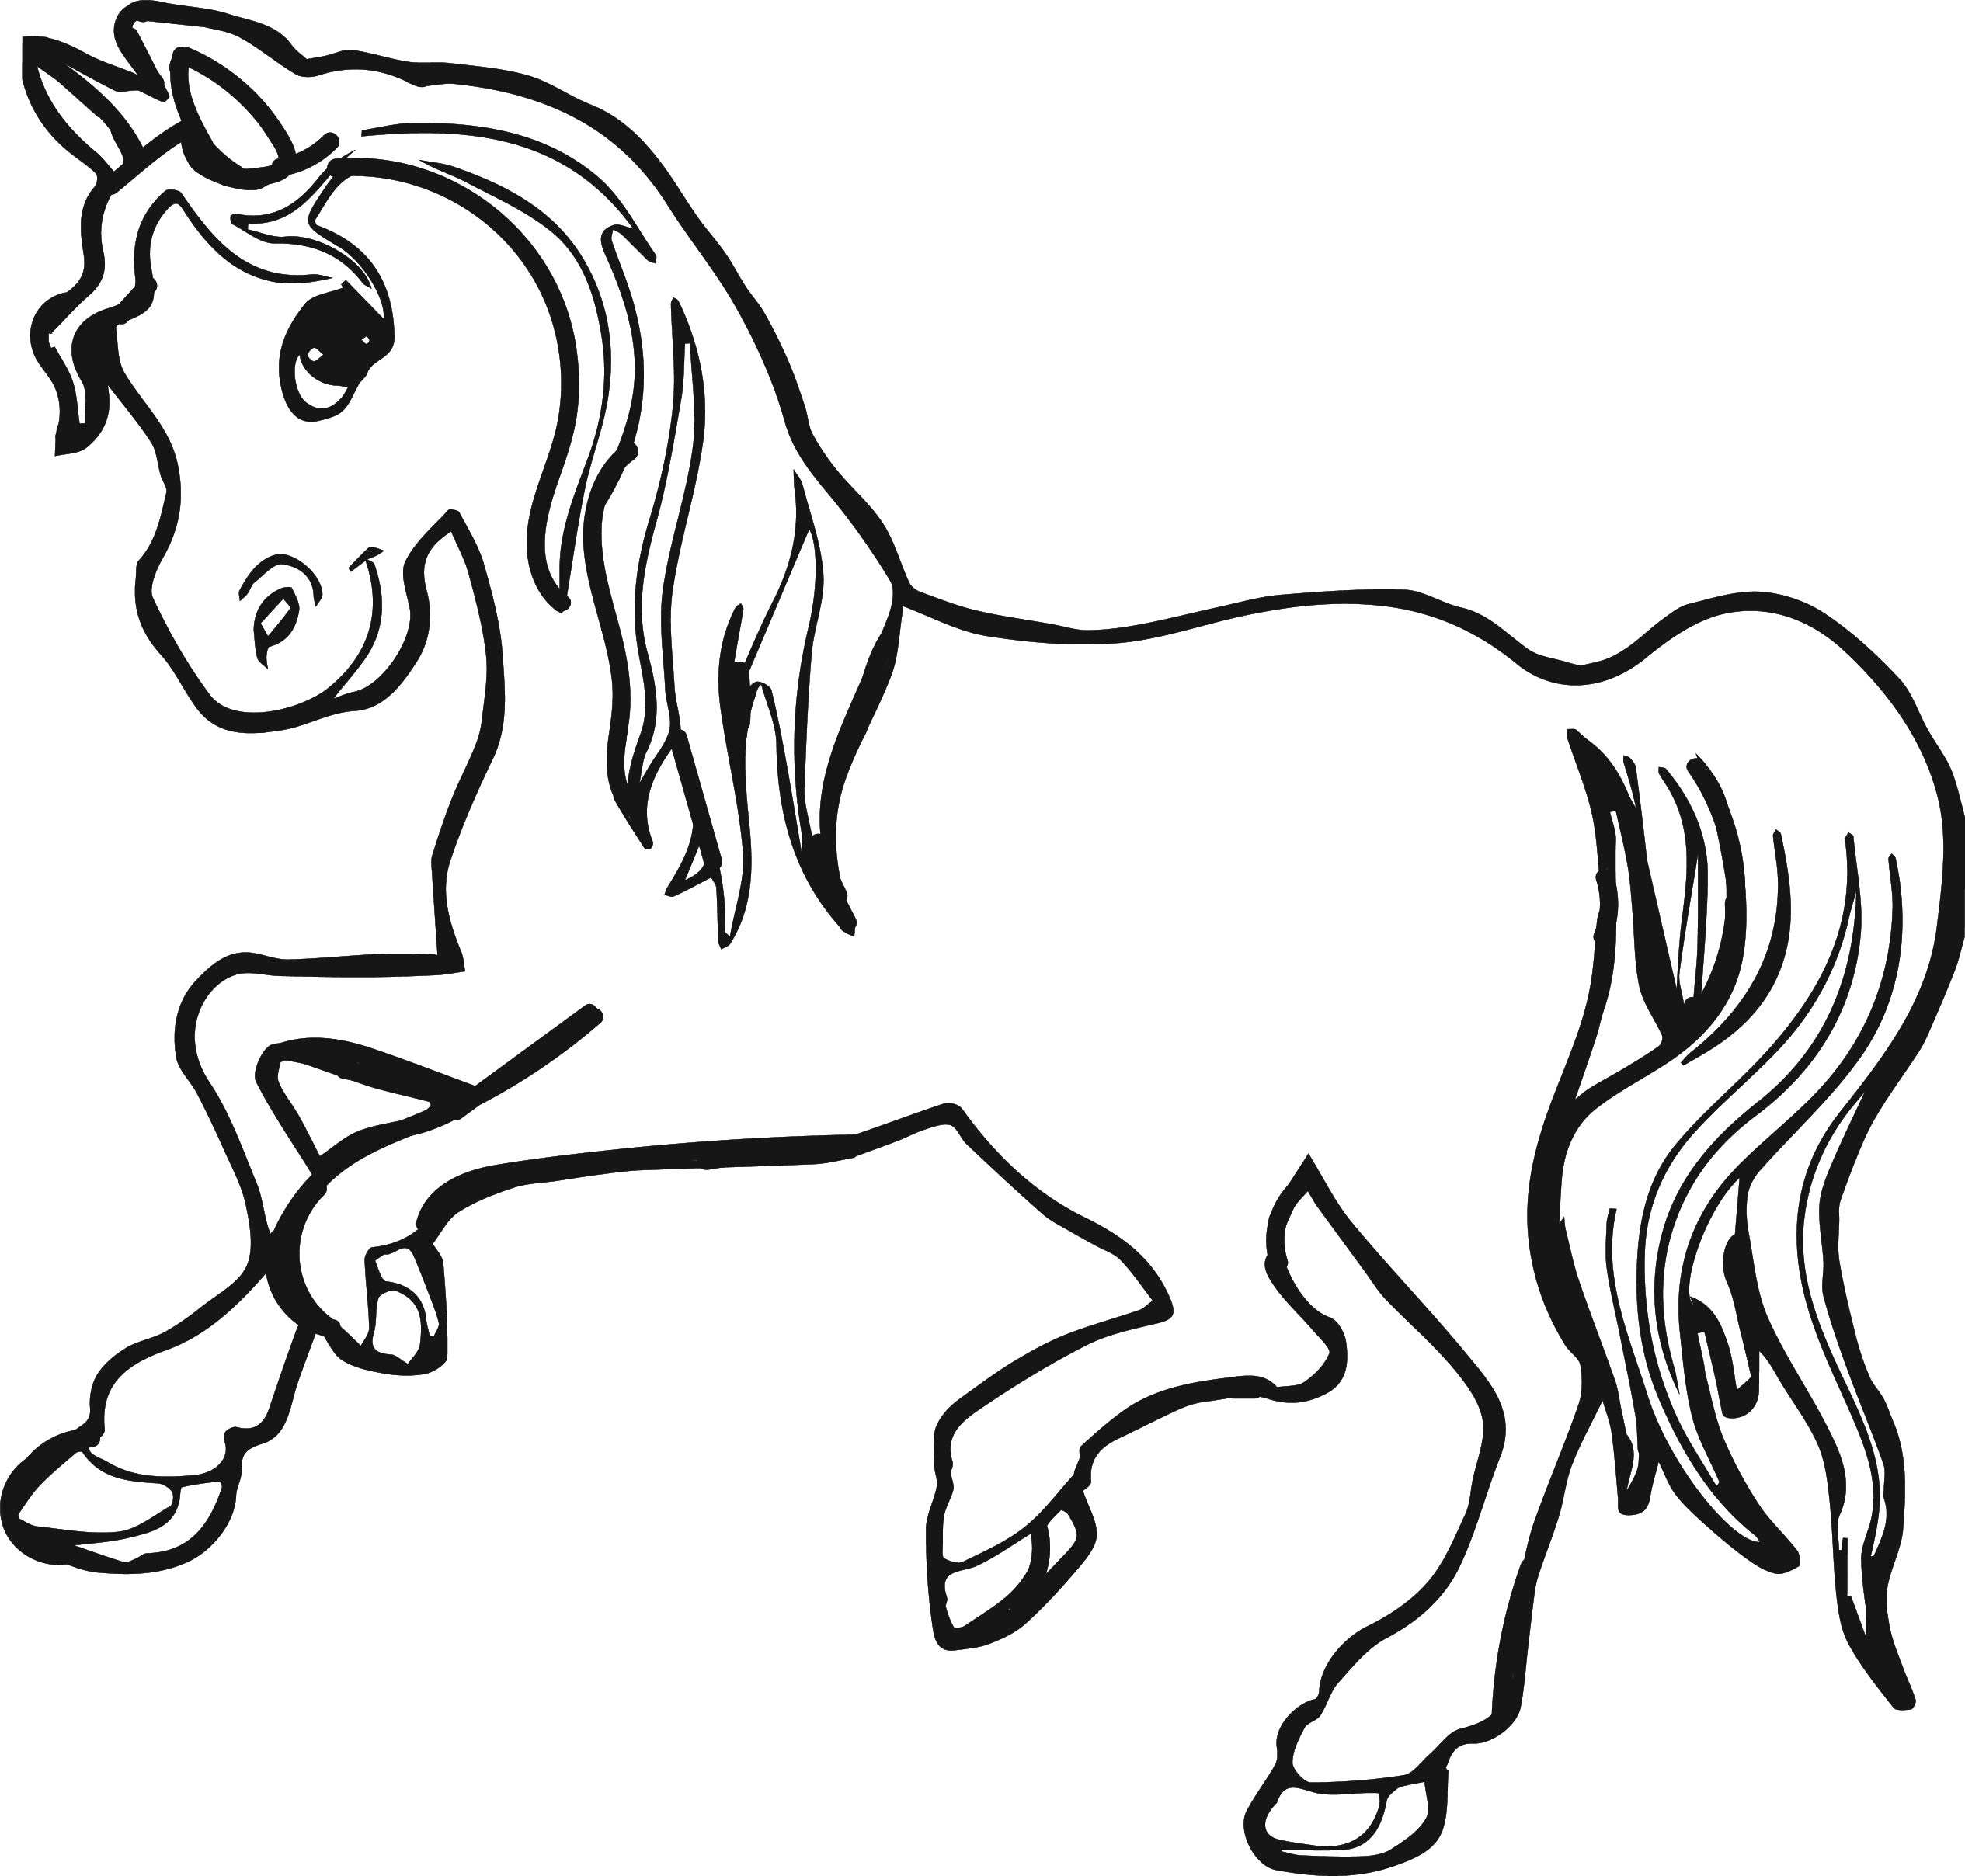 coloring picture of horse 30 best horse coloring pages ideas we need fun coloring horse of picture